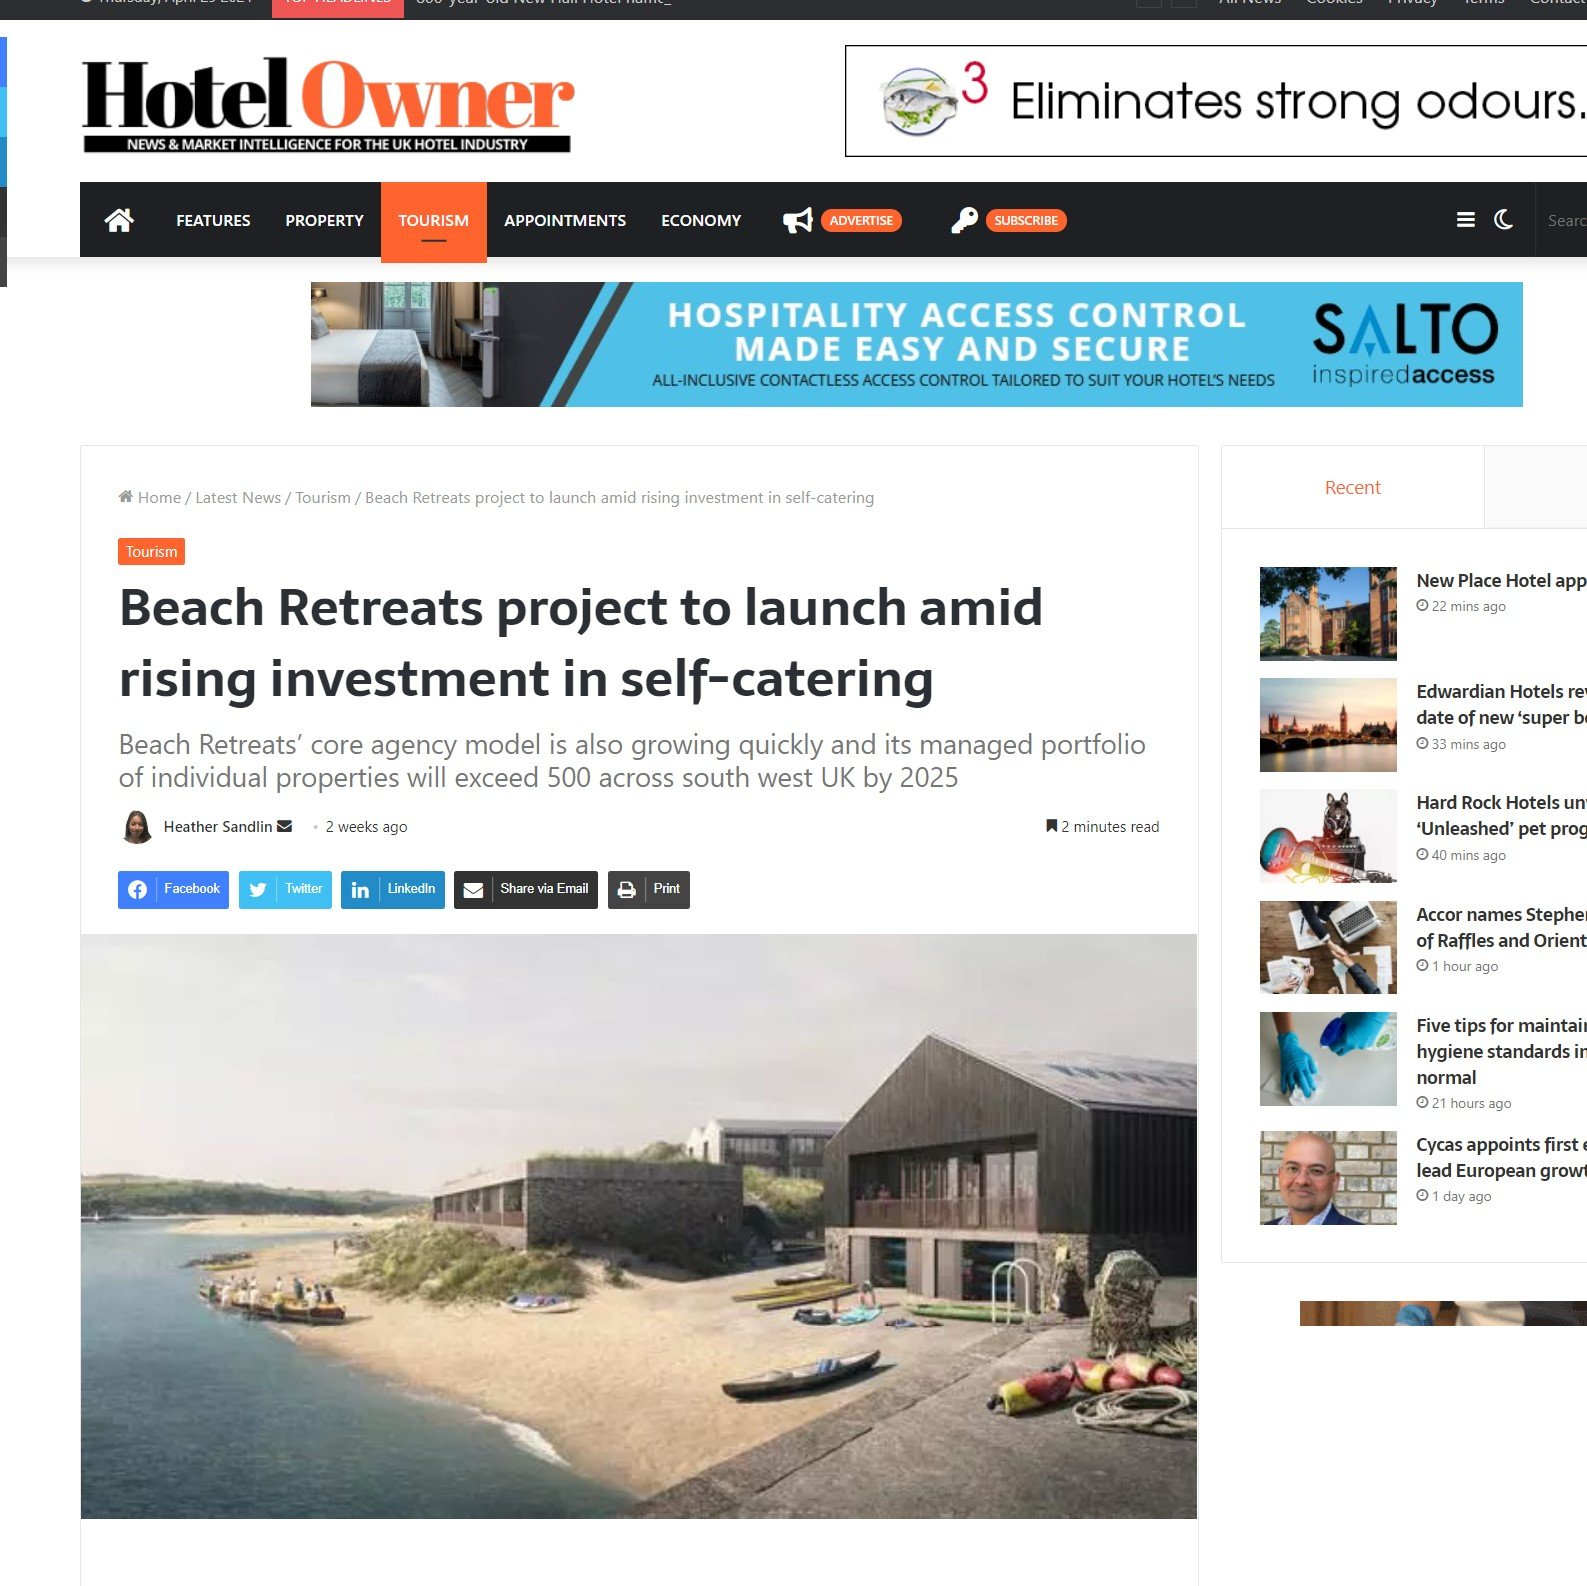 Beach-Retreats-project-to-launch-amid-rising-investment-in-self-catering-Article-Hotel-Owner